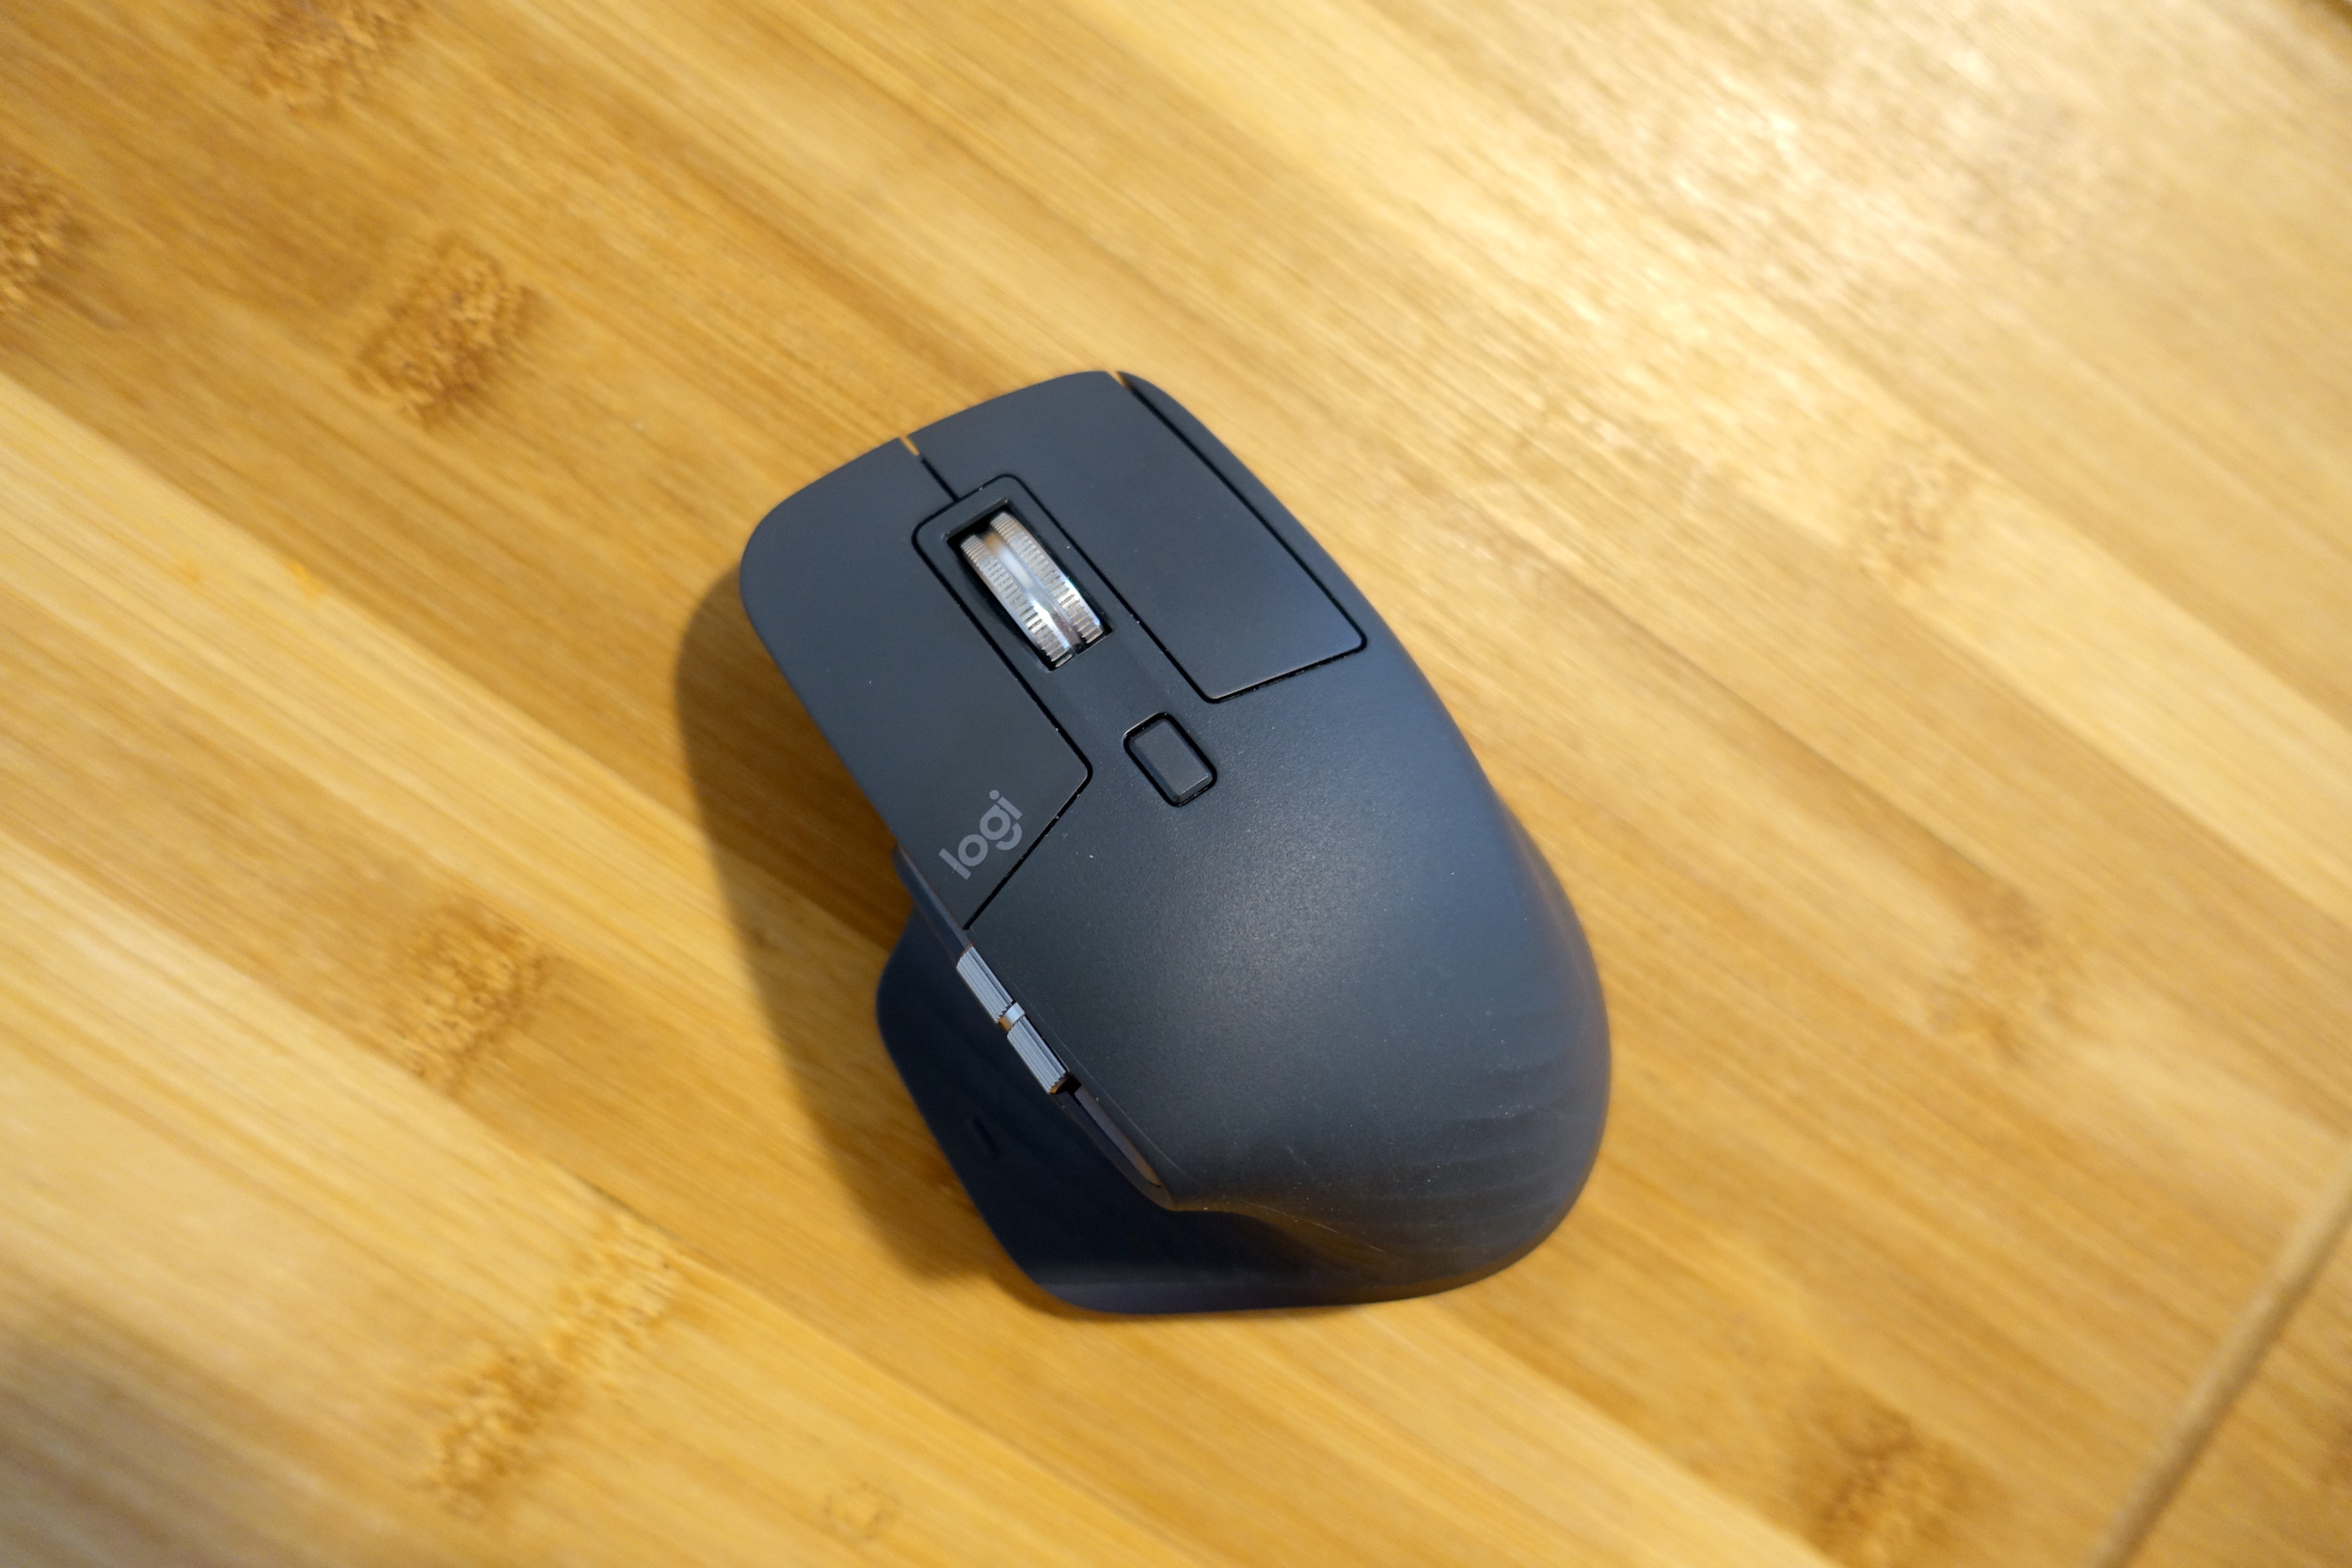 Logitech's MX Master 3 wireless mouse.